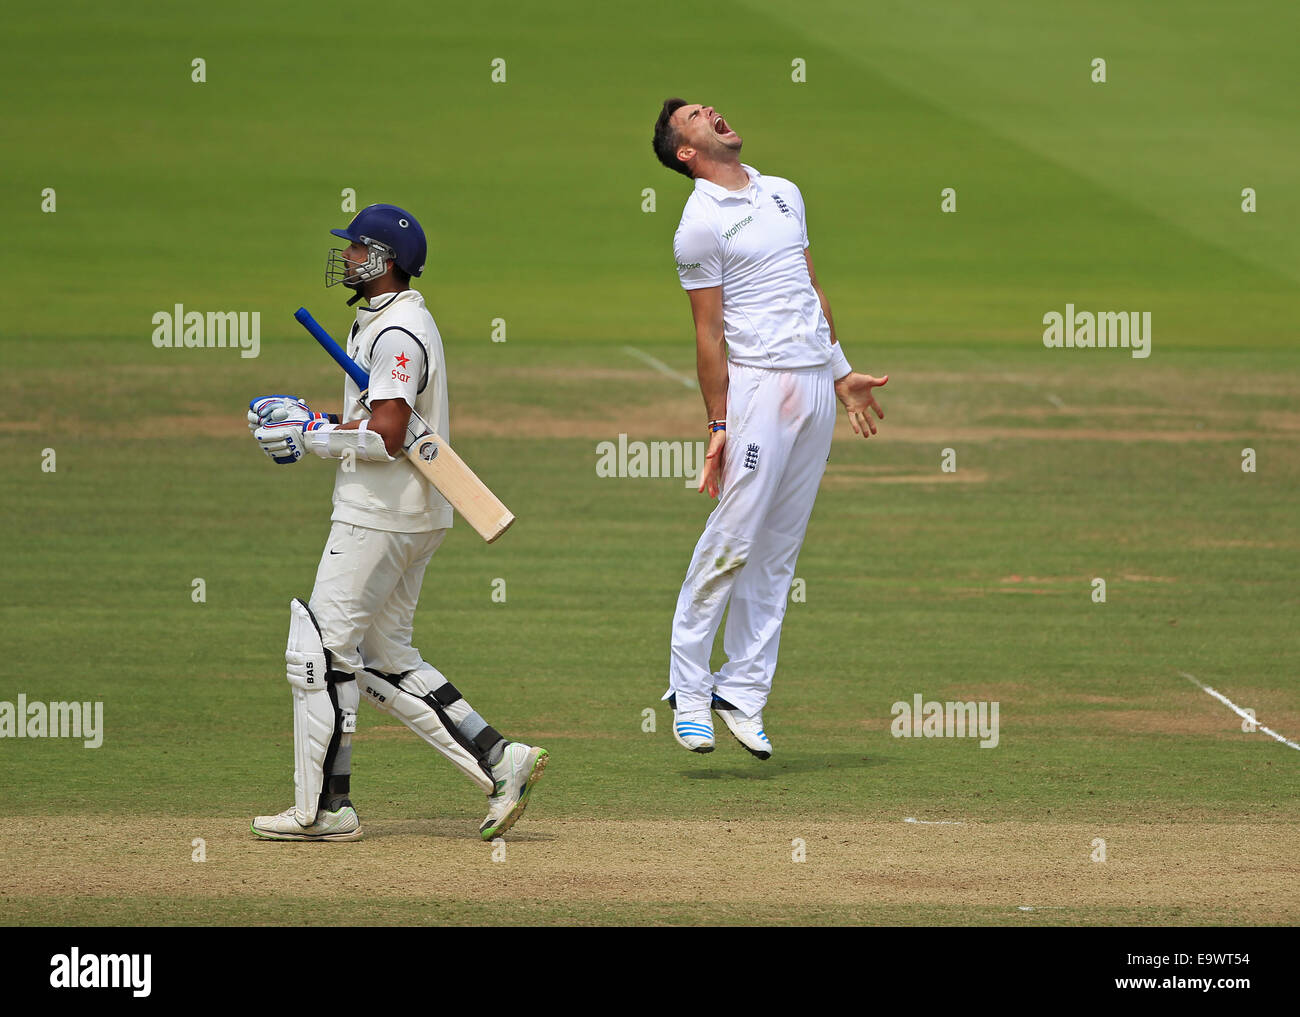 Cricket - James Anderson of England celebrates taking the wicket of Murali Vijay of India at the Lord's Test - Stock Image